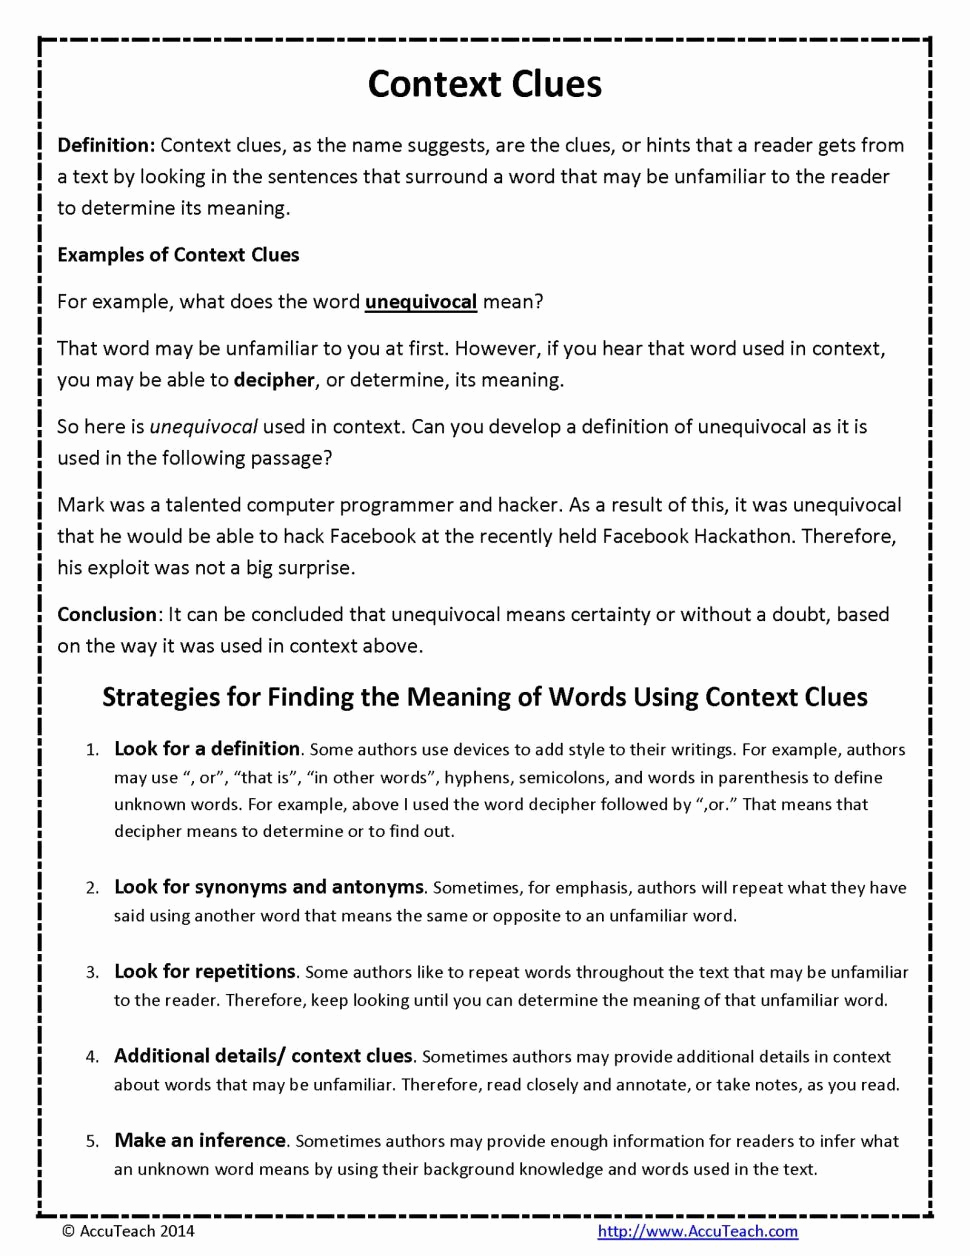 Context Clues Worksheets 1st Grade New 1st Grade Reading Prehension Worksheets Education Fun